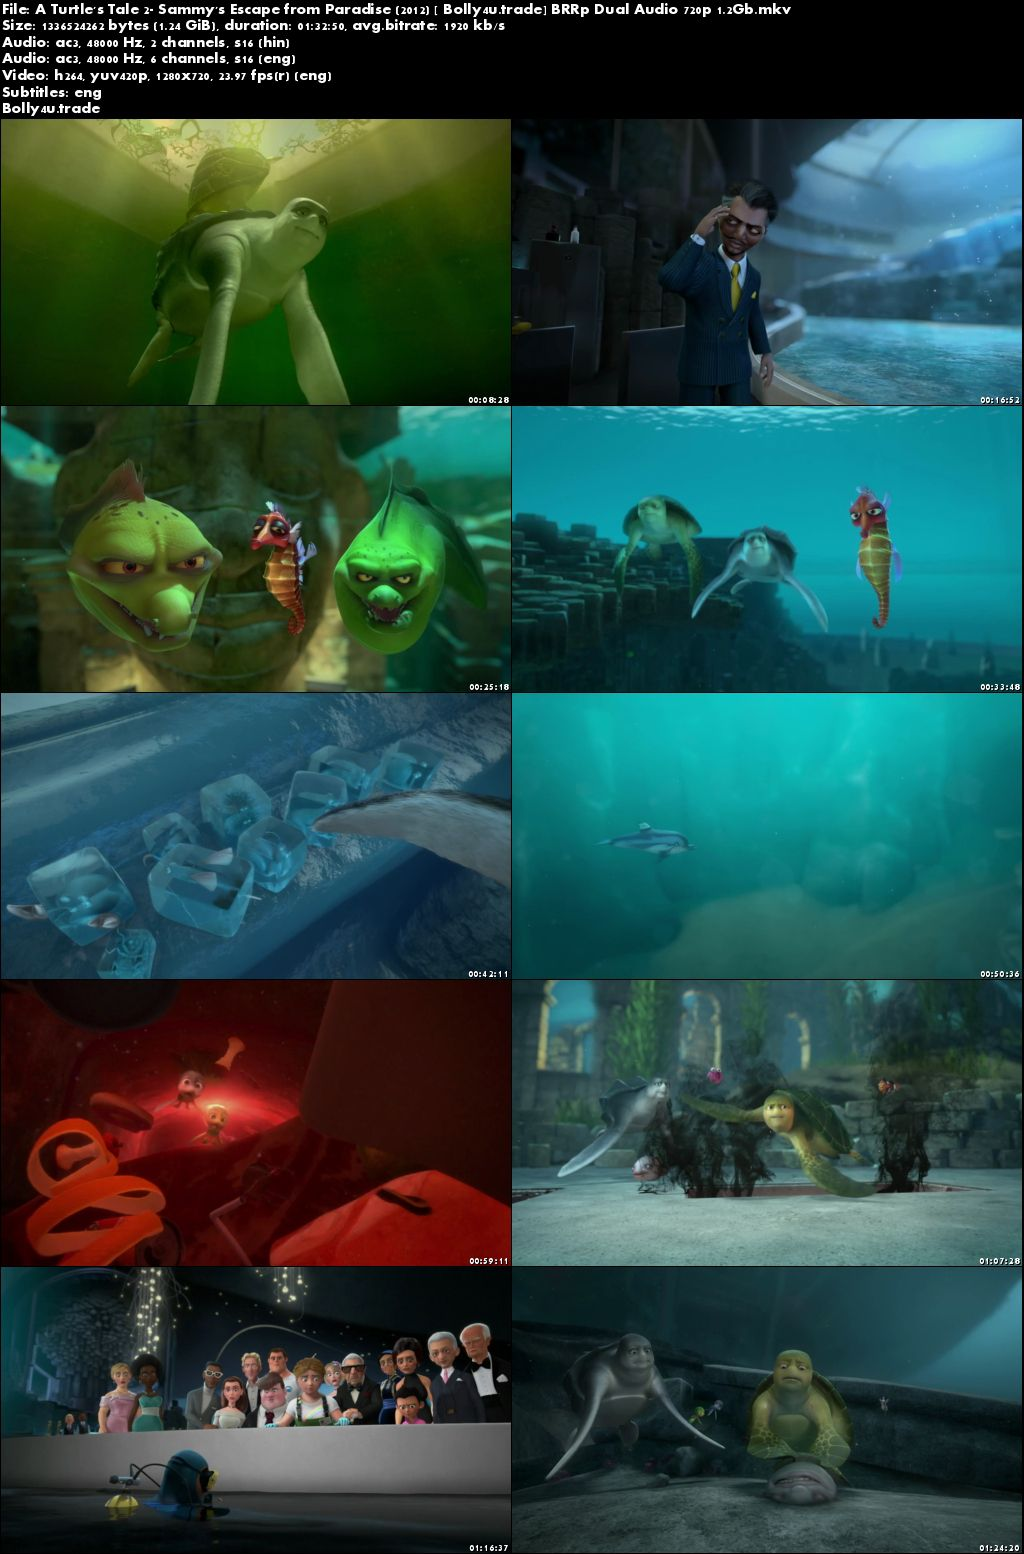 A Turtles Tale 2 Sammys Escape from Paradise 2012 BRRip Hindi Dual Audio 720p Download